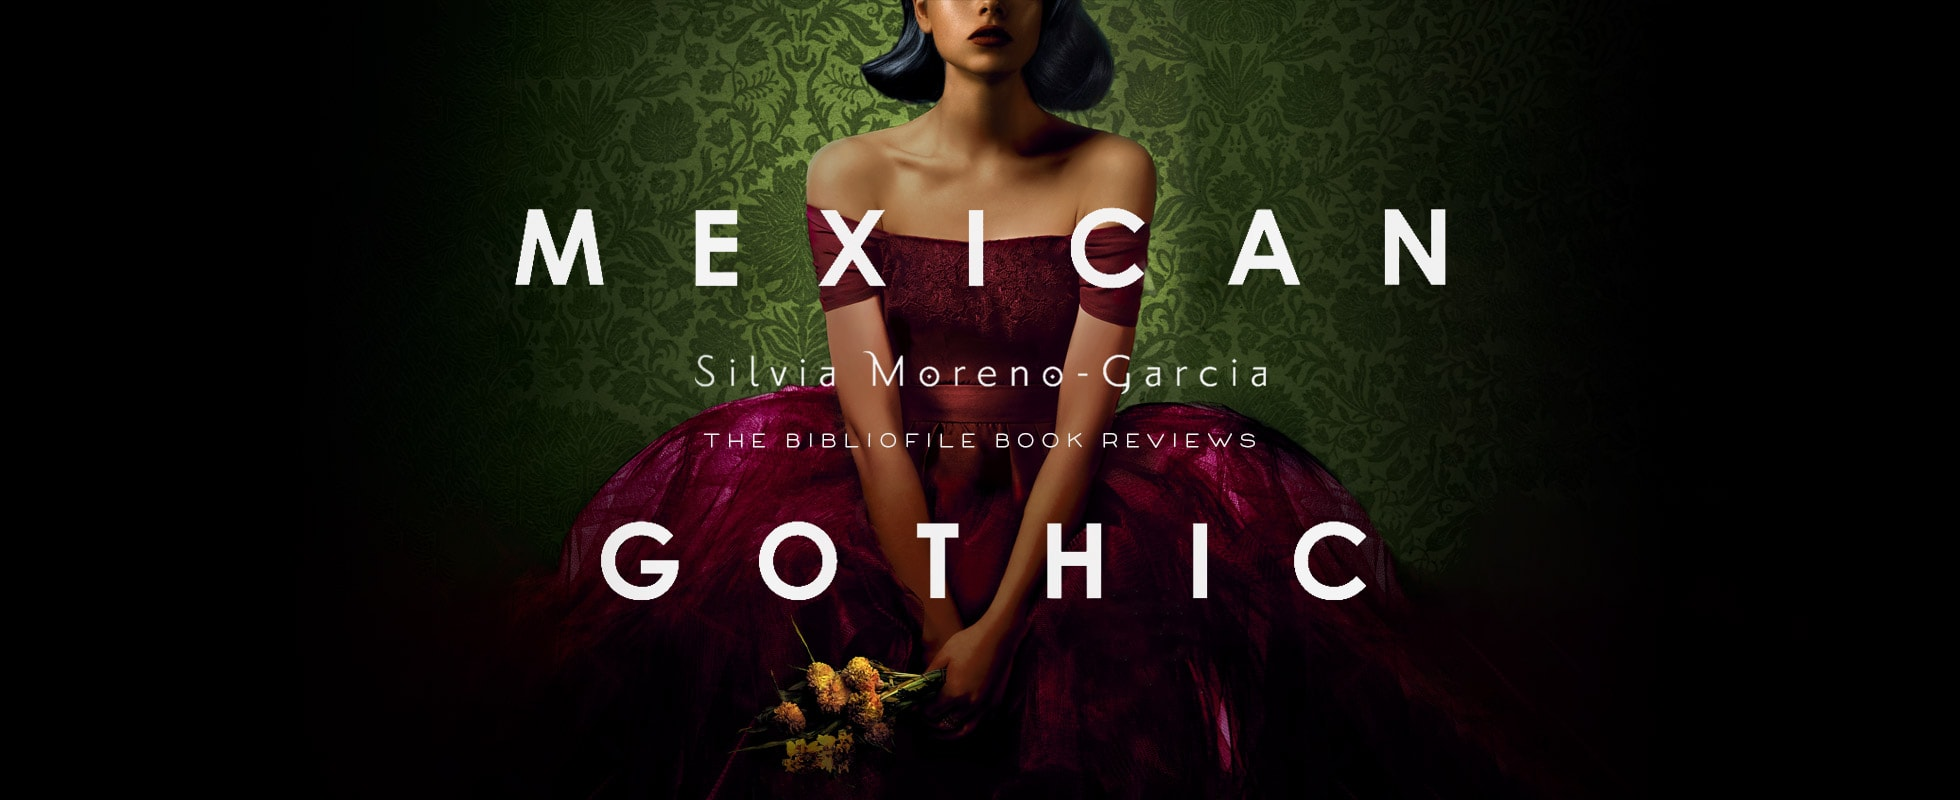 mexican gothic by silvia moreno-garcia plot summary synopsis book review